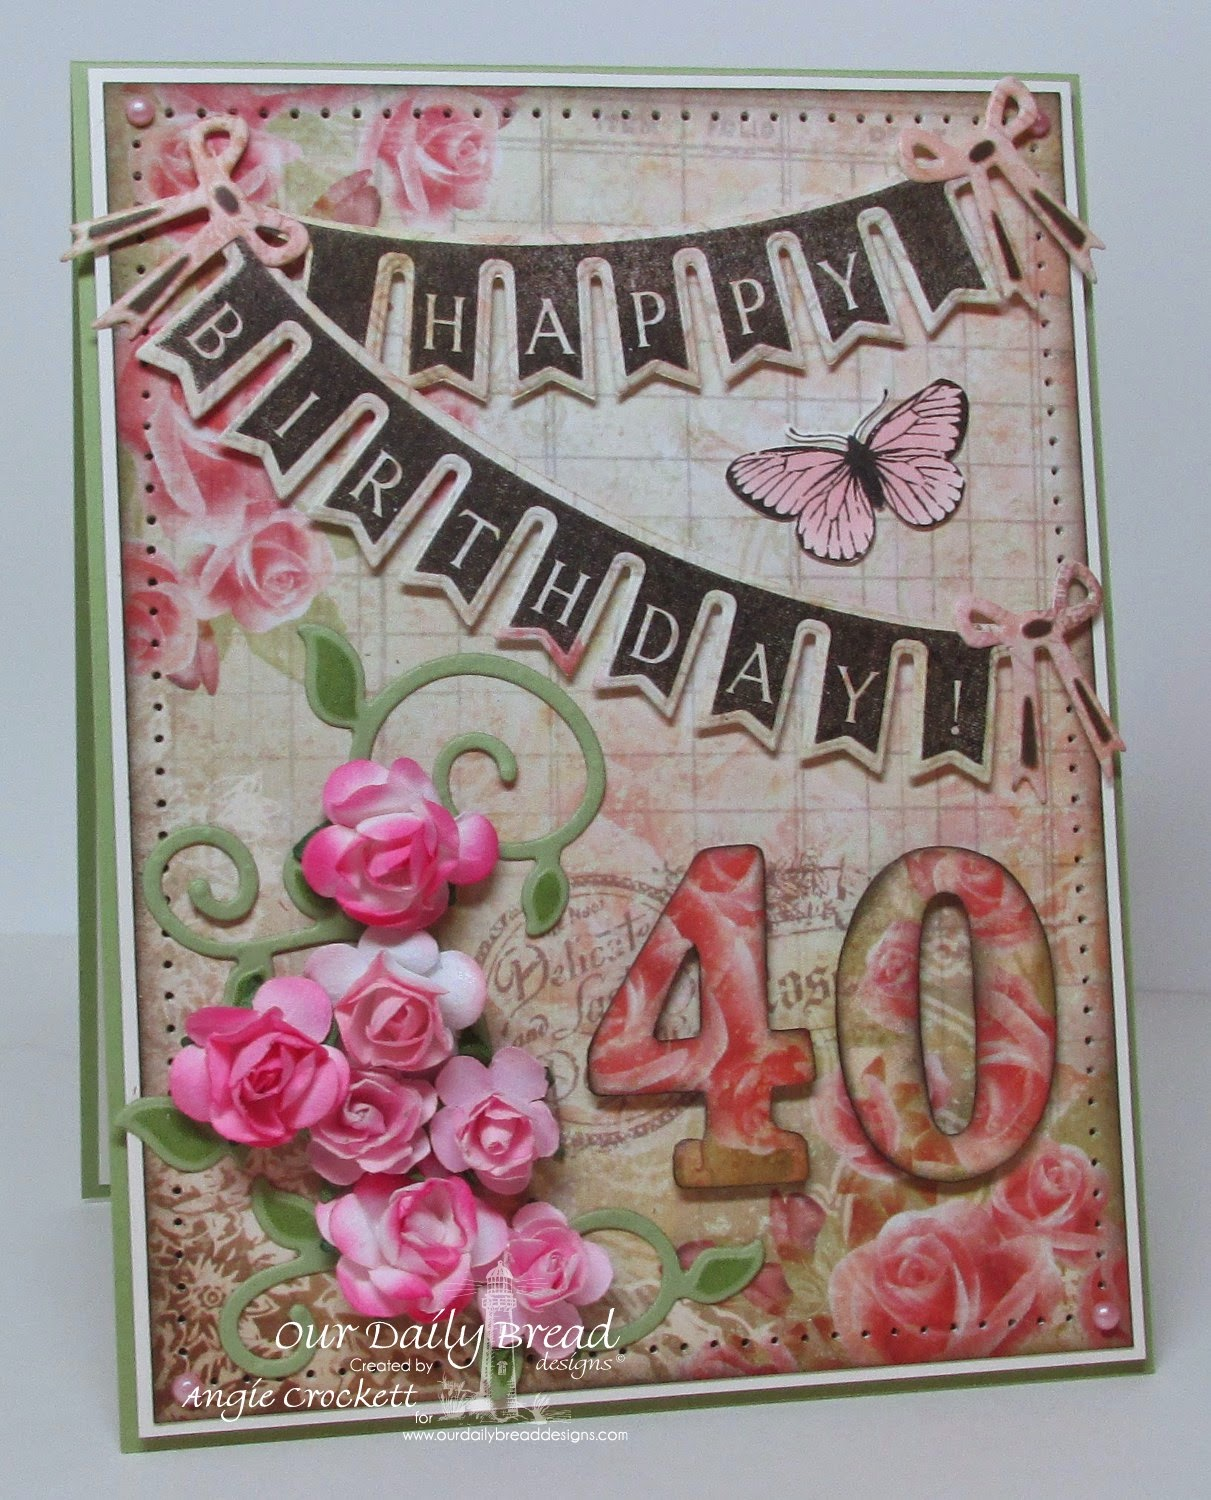 ODBD Pennant Swag Die, Pennant Swag 2, Blushing Rose Collection, ODBD Custom Fancy Foliage Dies, Butterfly Stamped-By Mini, Card Designer Angie Crockett